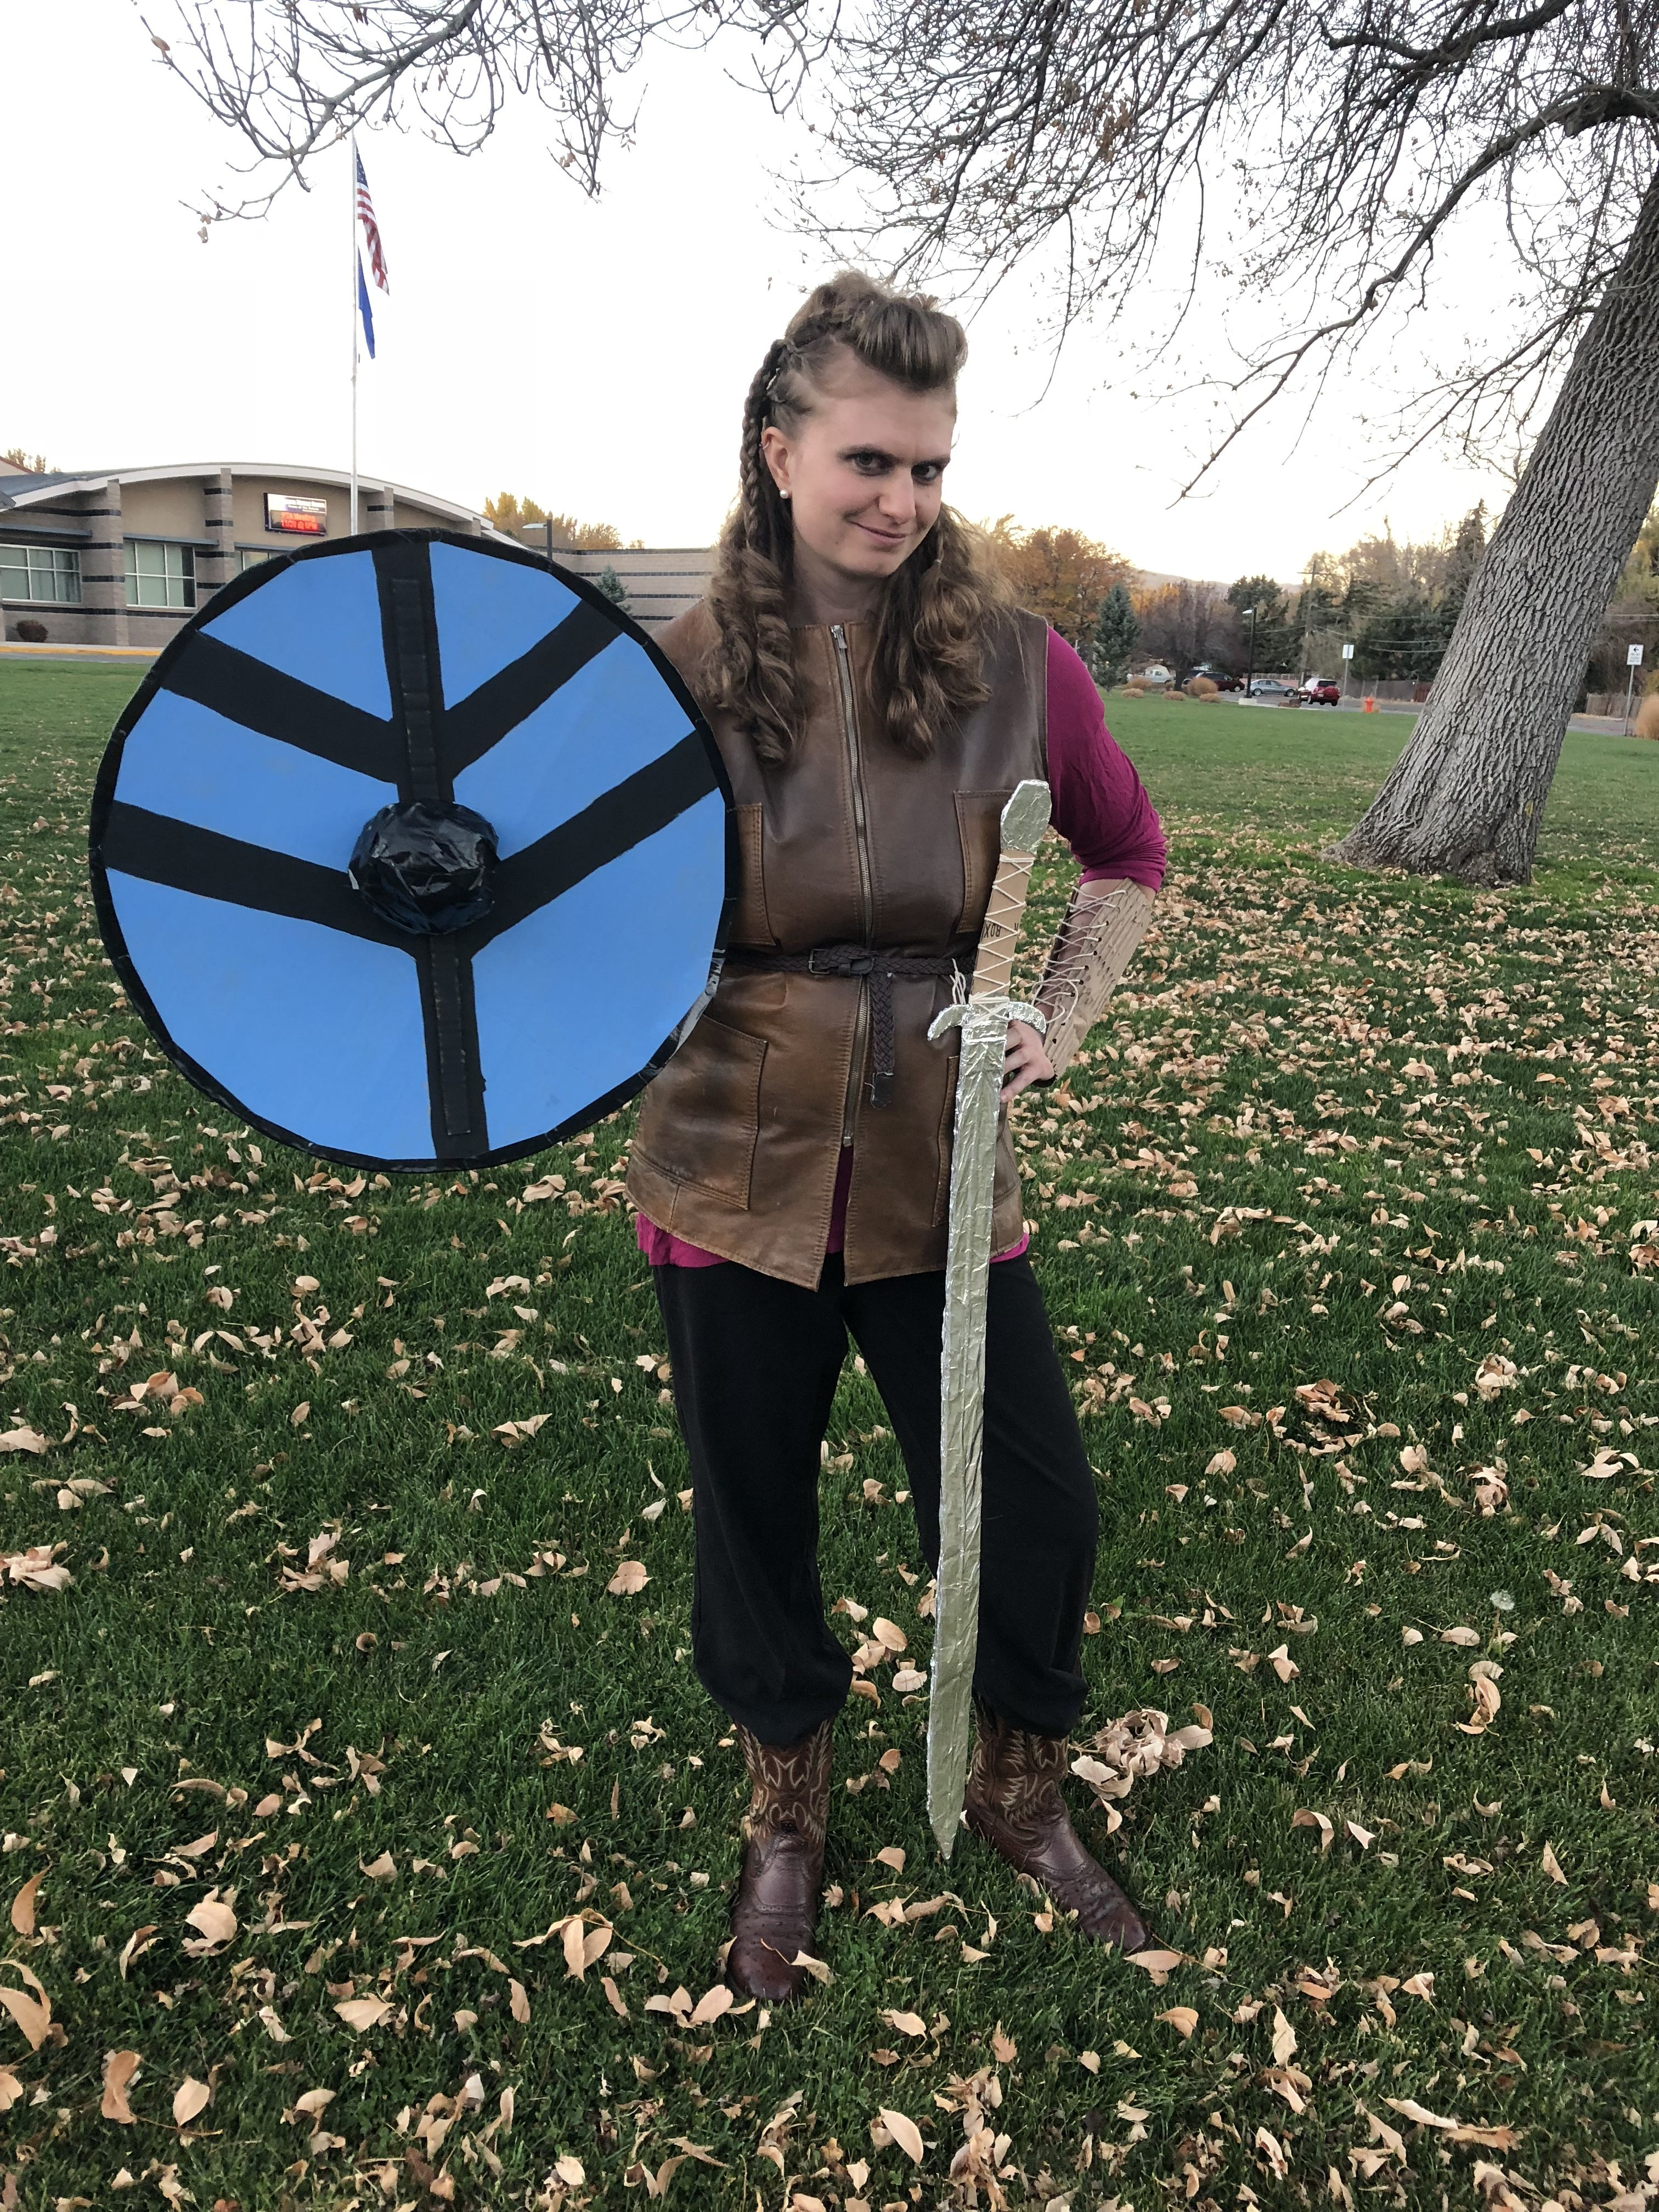 lagertha from history channel's vikings as a halloween costume